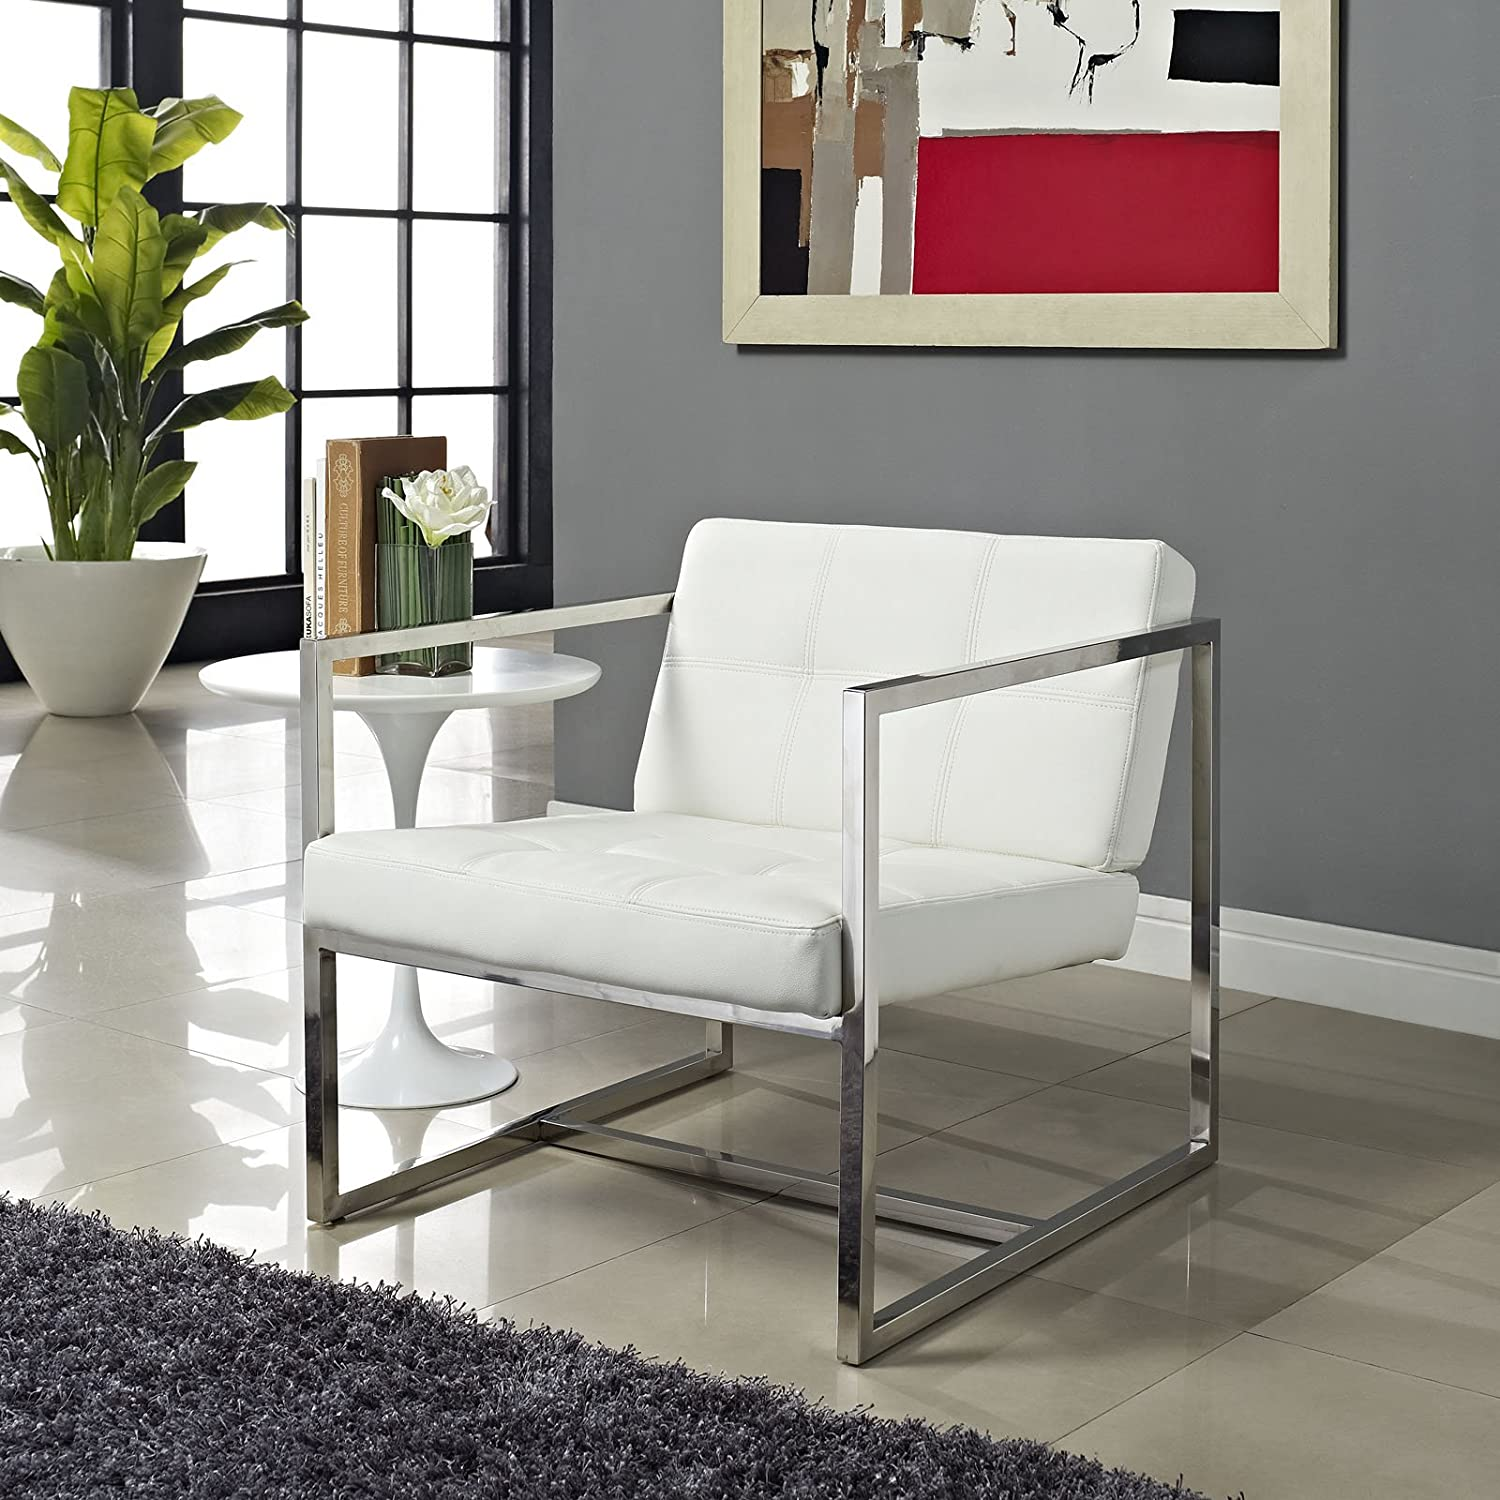 Amazon.com: Modway Hover Modern Reception Chair, White: Kitchen & Dining